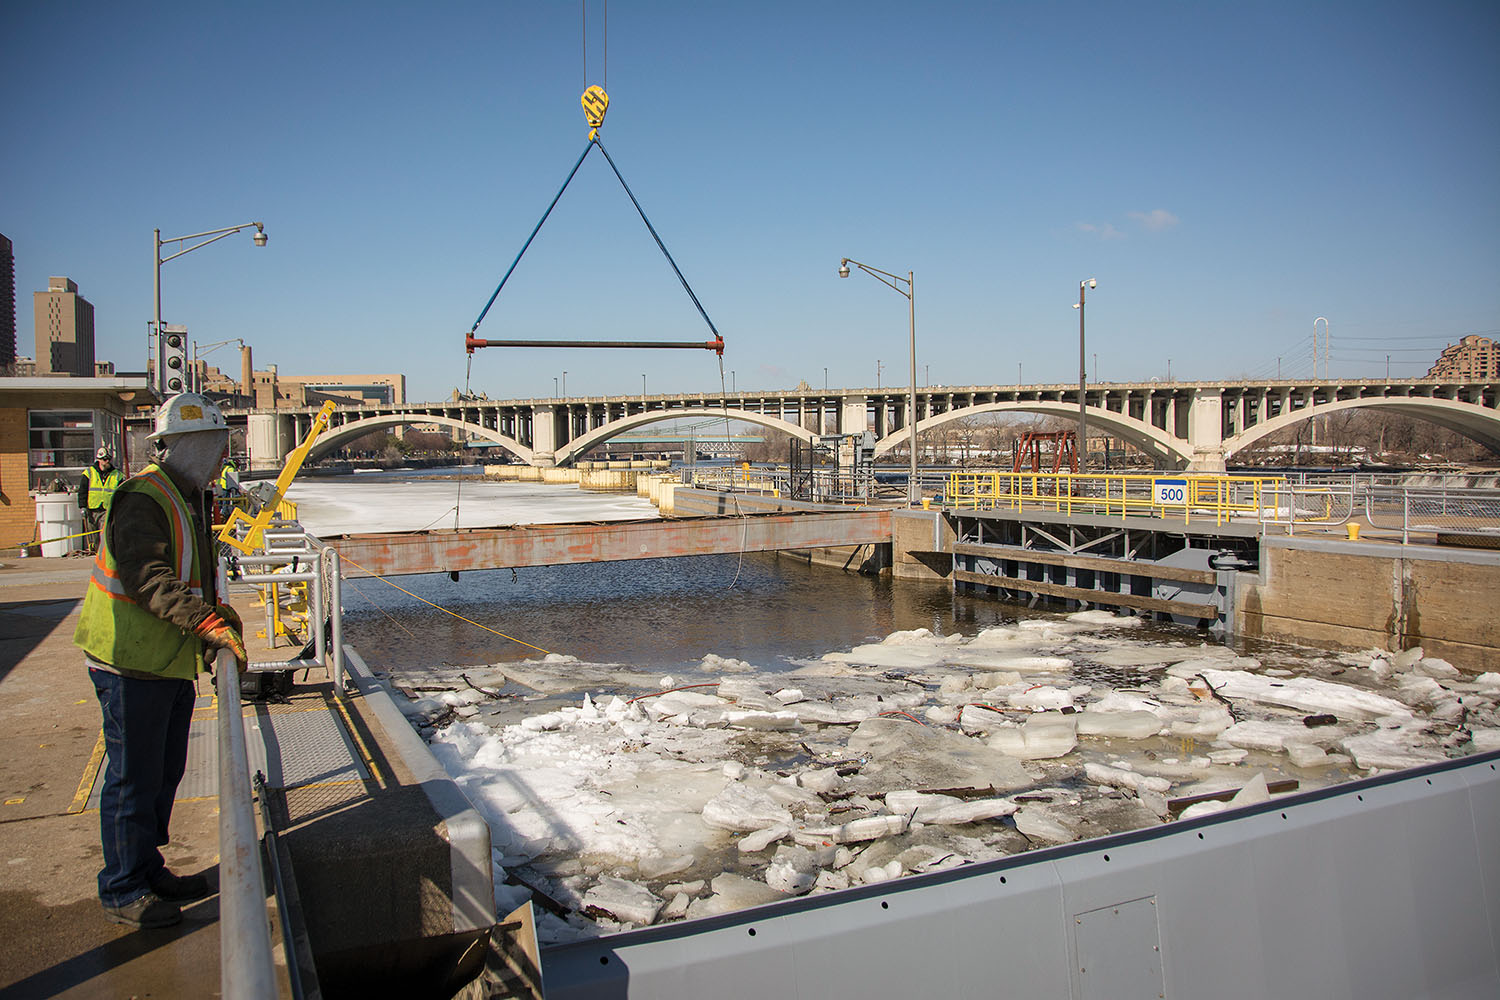 A contractor crews lifts steel bulkheads on the upstream side of the St. Anthony Falls Lock on March 20, a tricky maneuver completed in advance of anticipated high flows resulting from snowpack melt in the Mississippi headwaters. (Corps of Engineers photo by Patrick Loch)